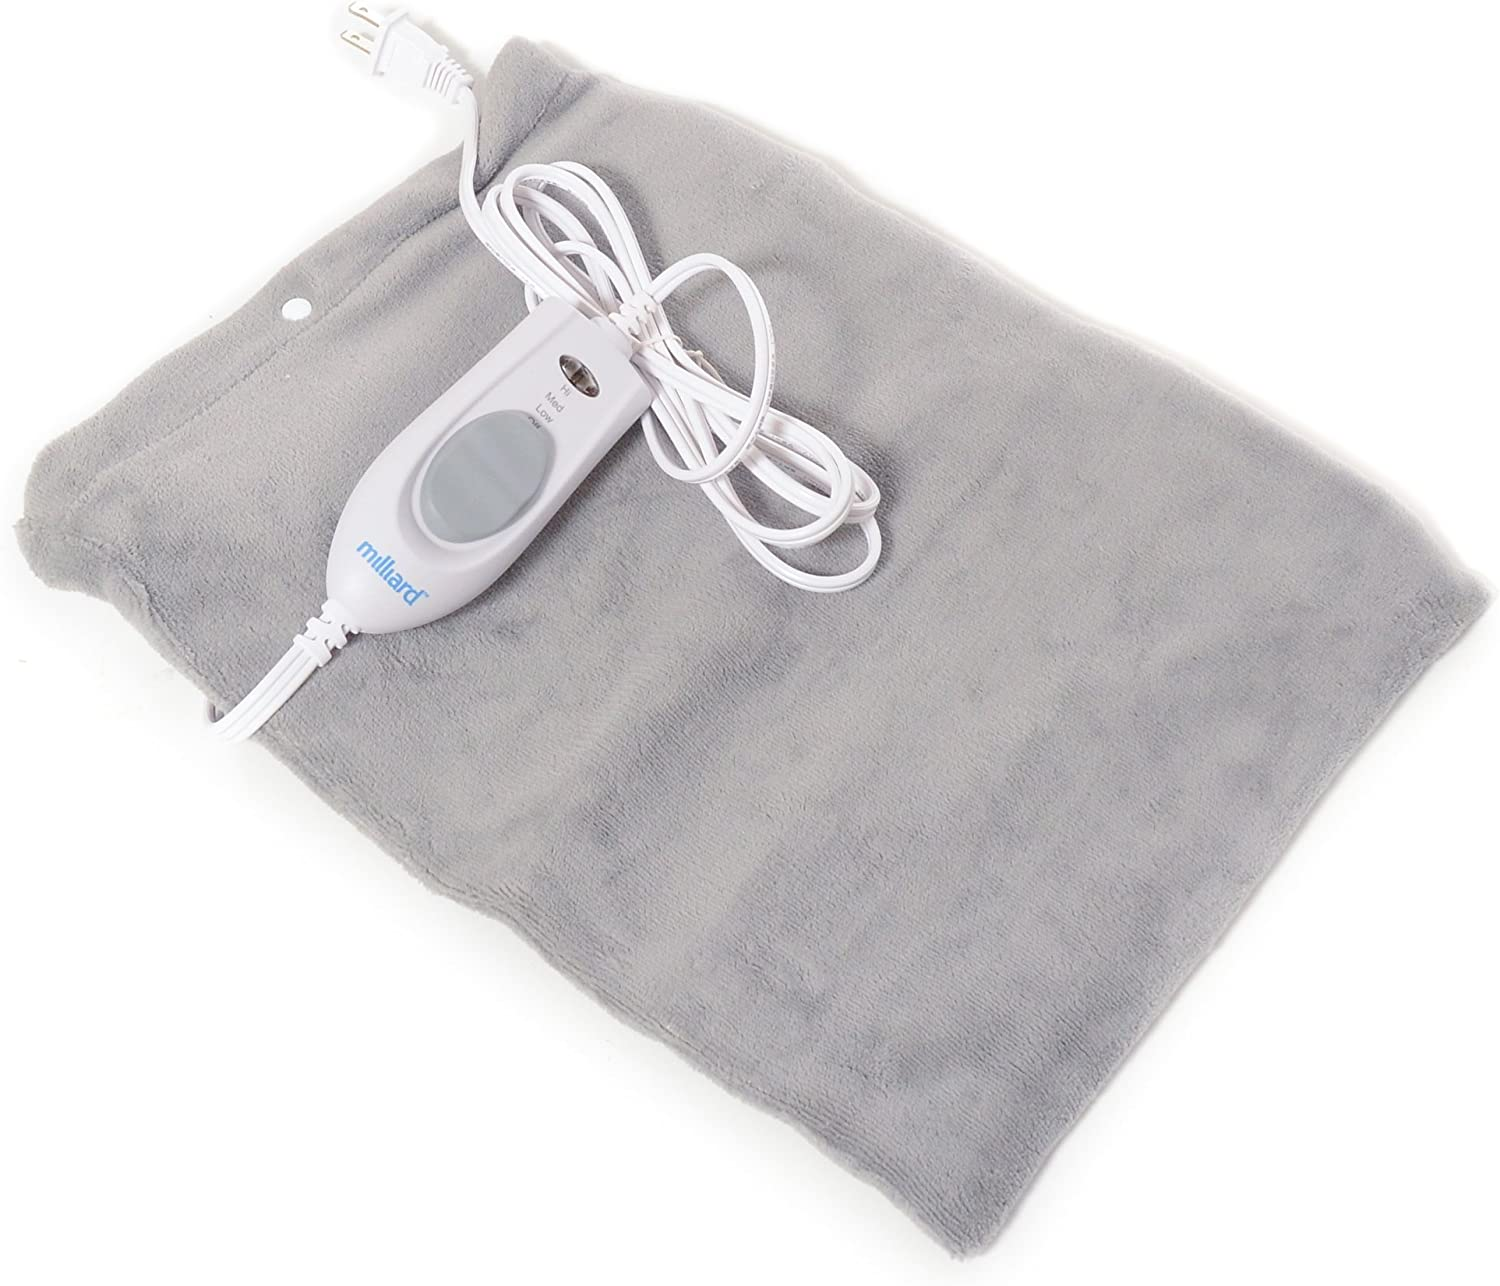 Milliard Electric Therapy Heating Pad for Fast Pain Relief - Gray - 15in x 12in: Health & Personal Care